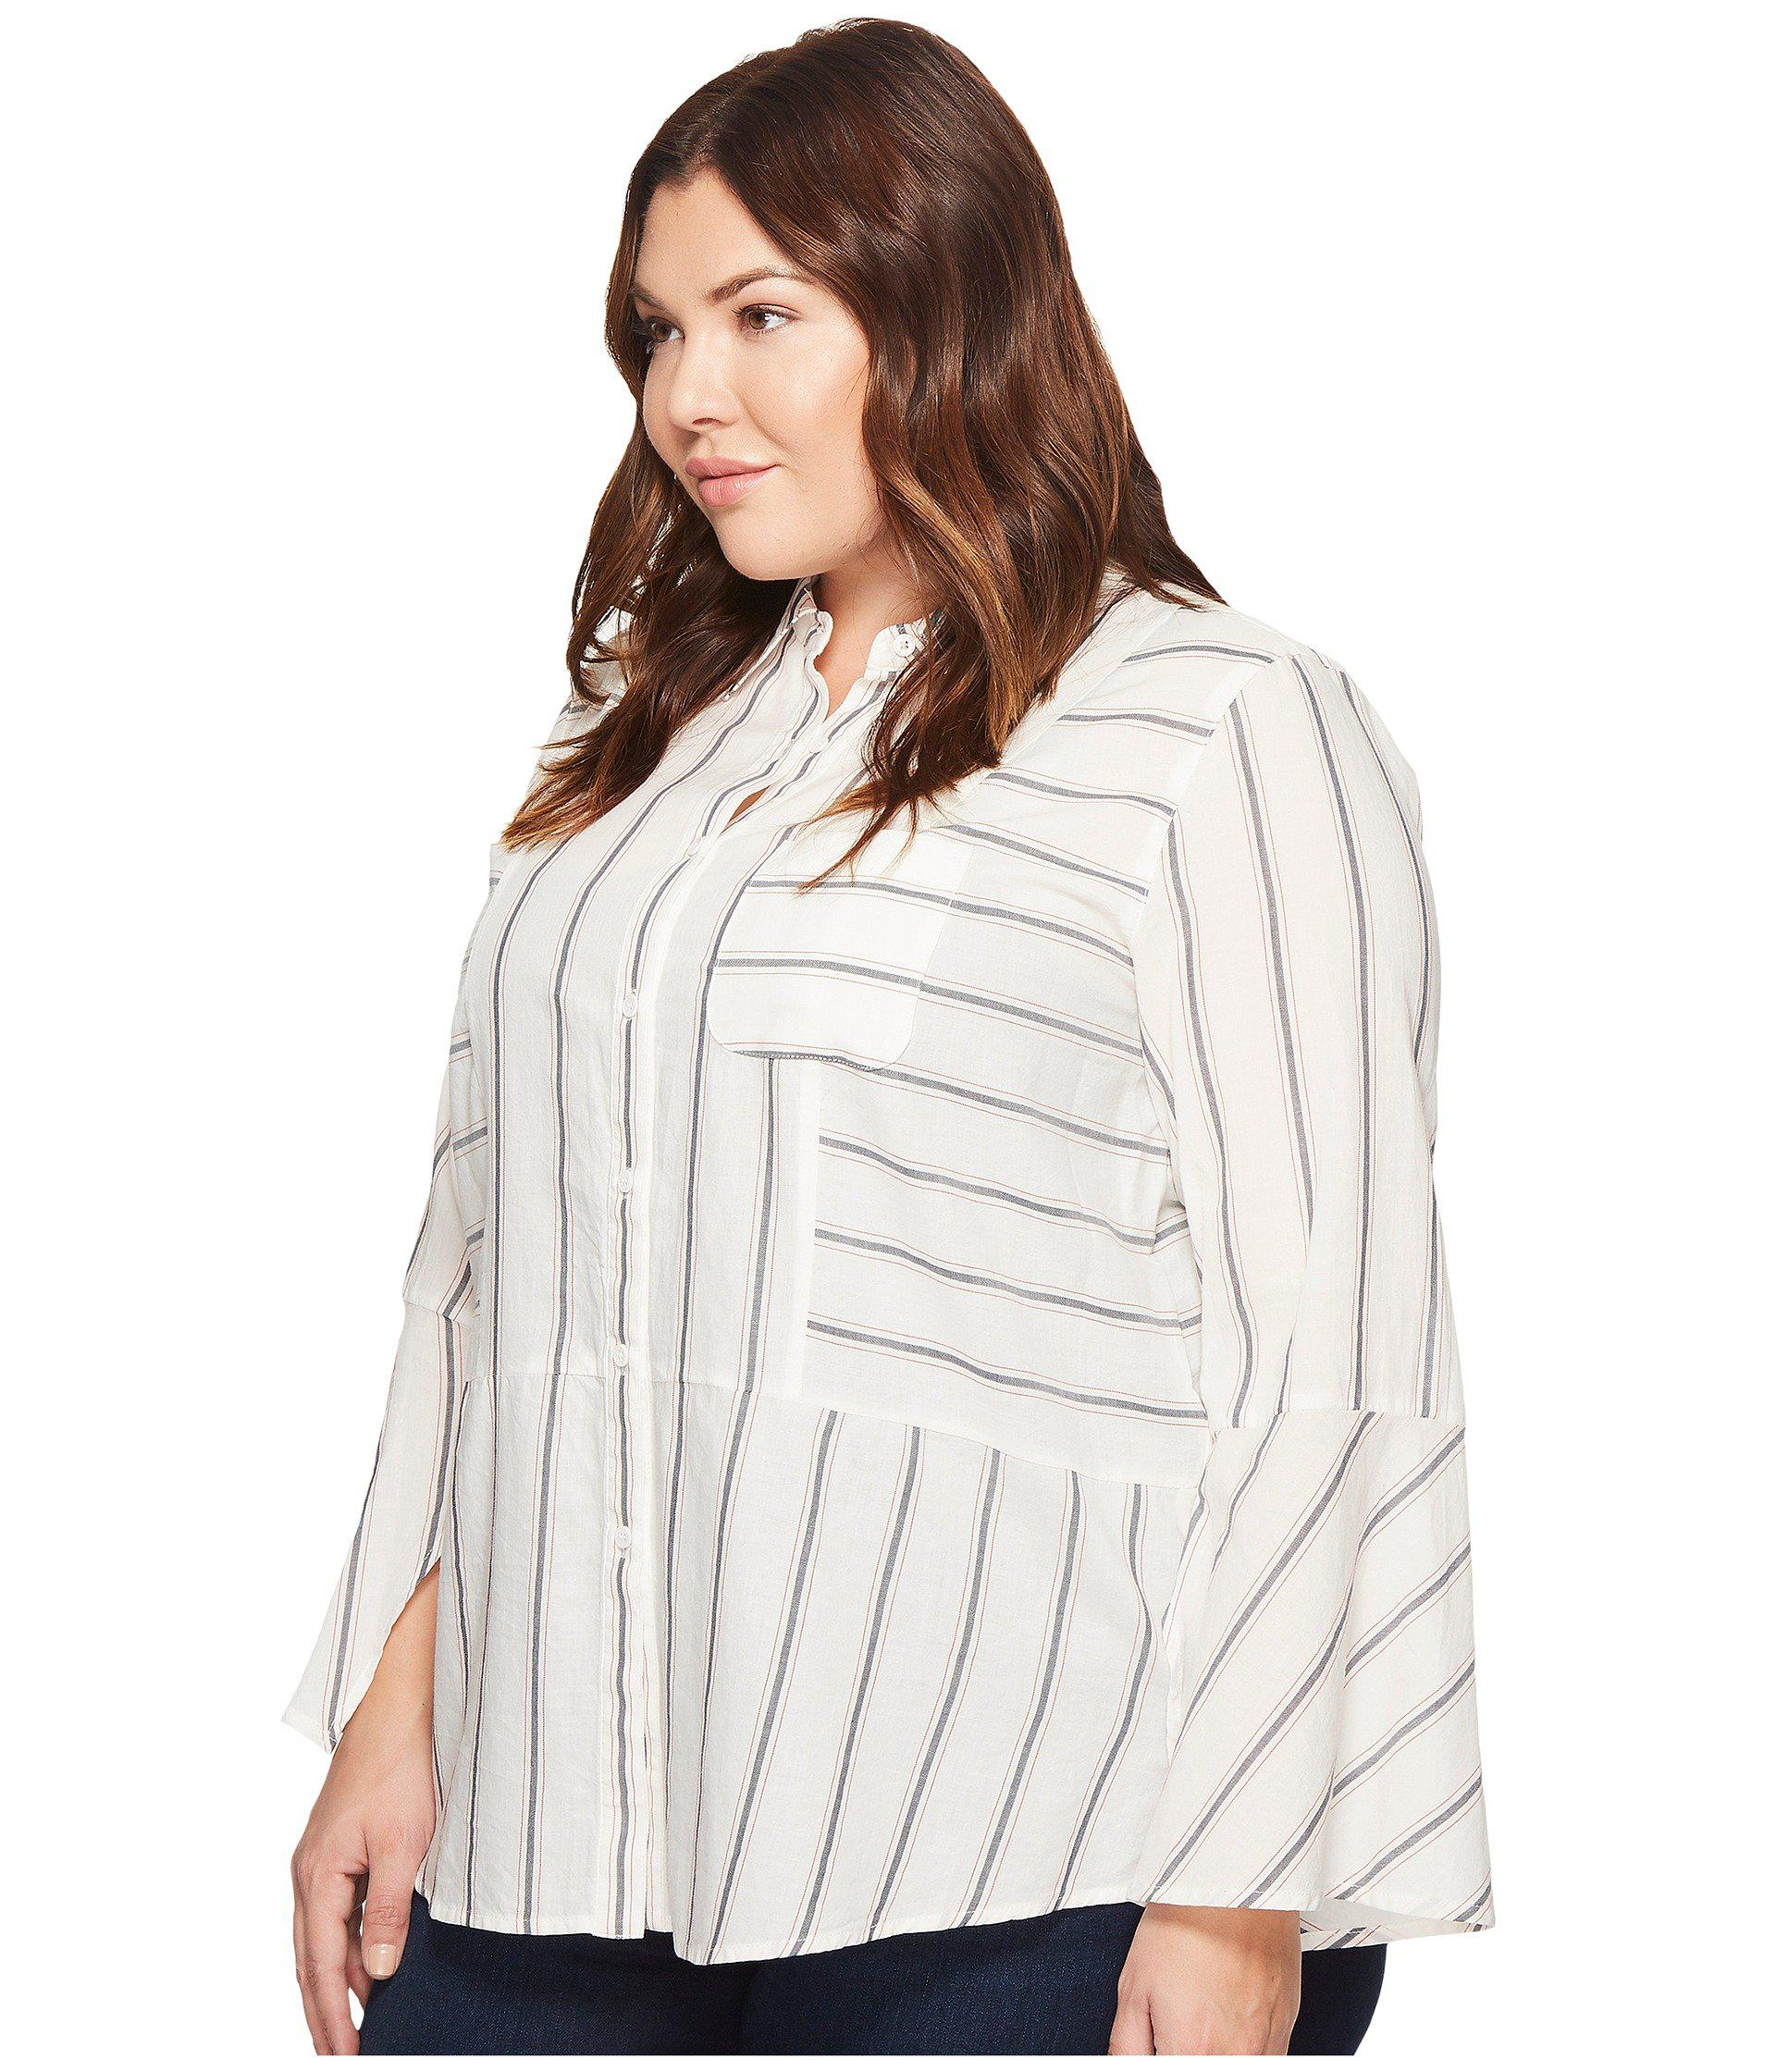 bd23bc06f37 Lyst - Two By Vince Camuto Plus Size Bell Sleeve Yarn-dye Stripe Collared  Shirt in White - Save 57.971014492753625%